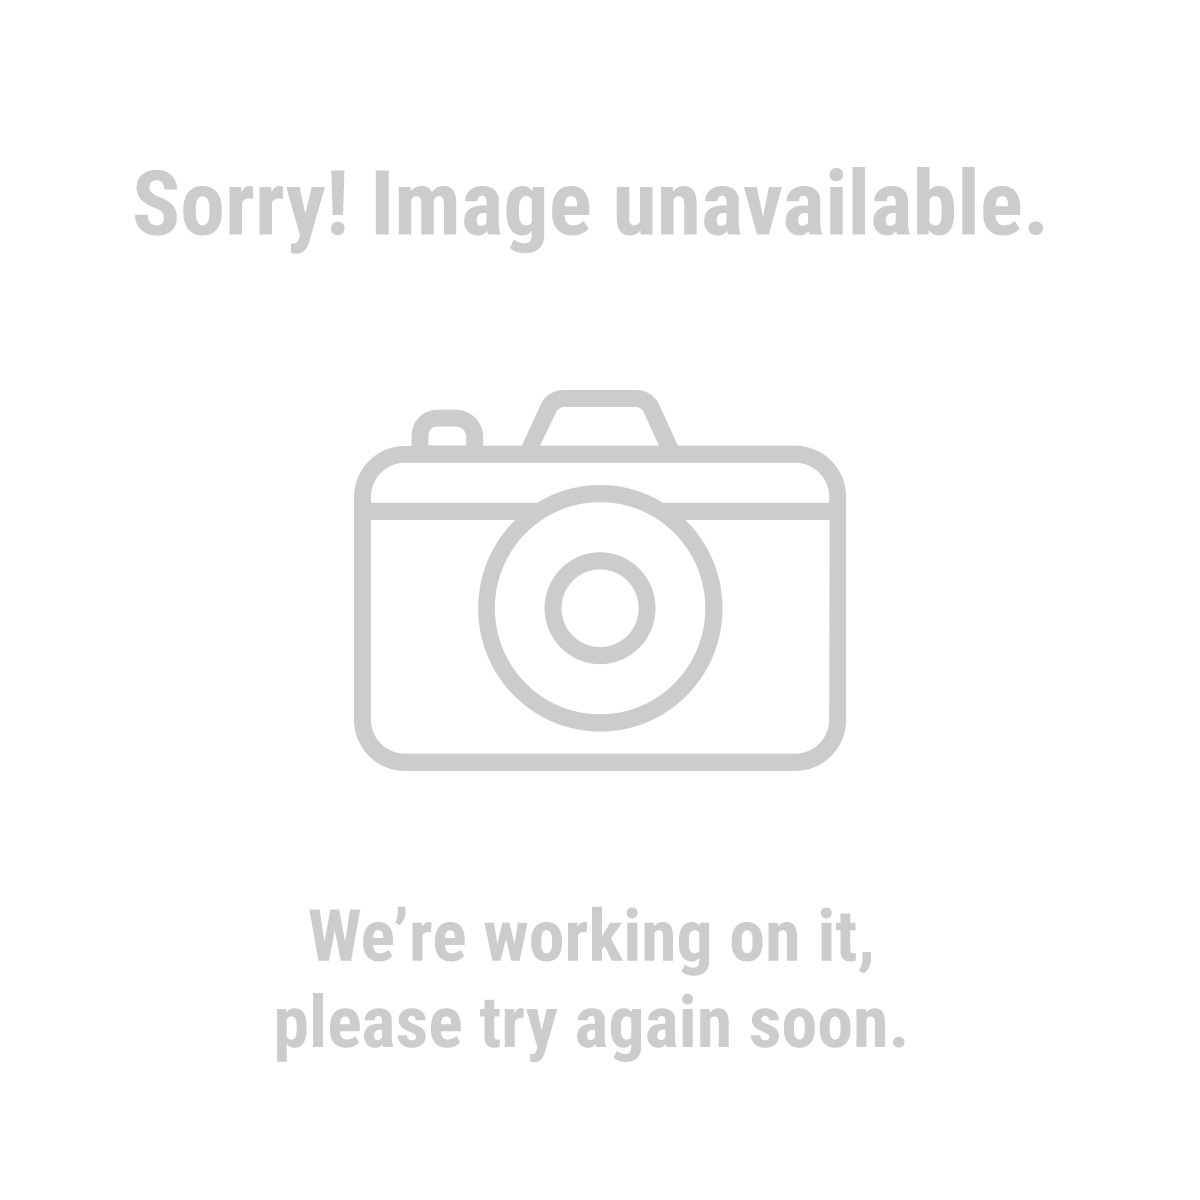 Smith + Jones 60814 1-1/2 Horsepower Compressor Duty Motor